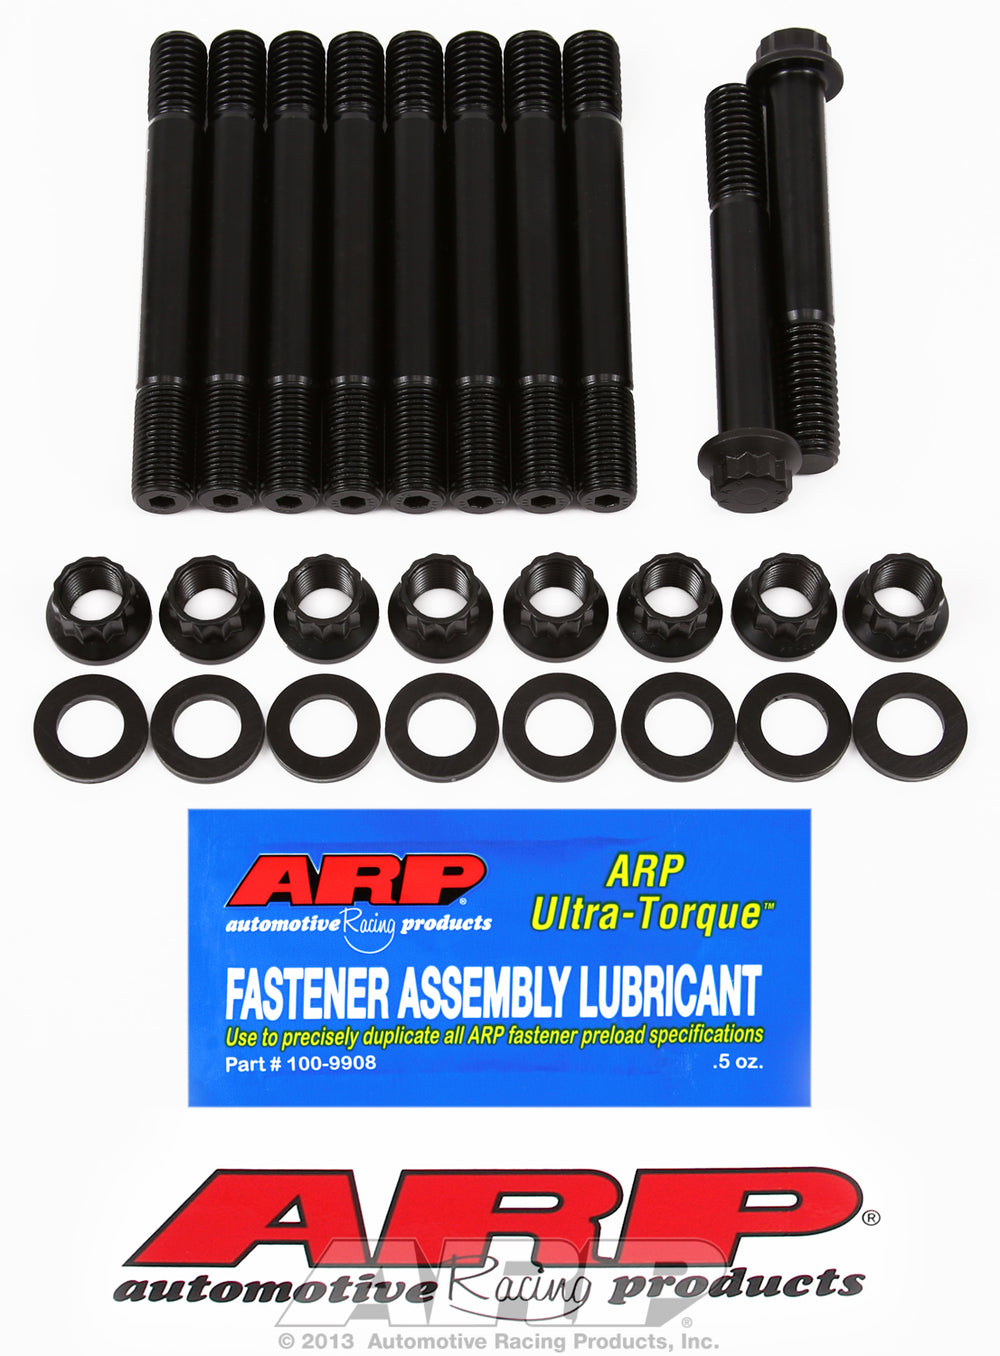 Main Stud Kit for Ford 390-428 cid FE series (12 pt nuts, 8 studs & 2 bolts for #5 cap) - no modific